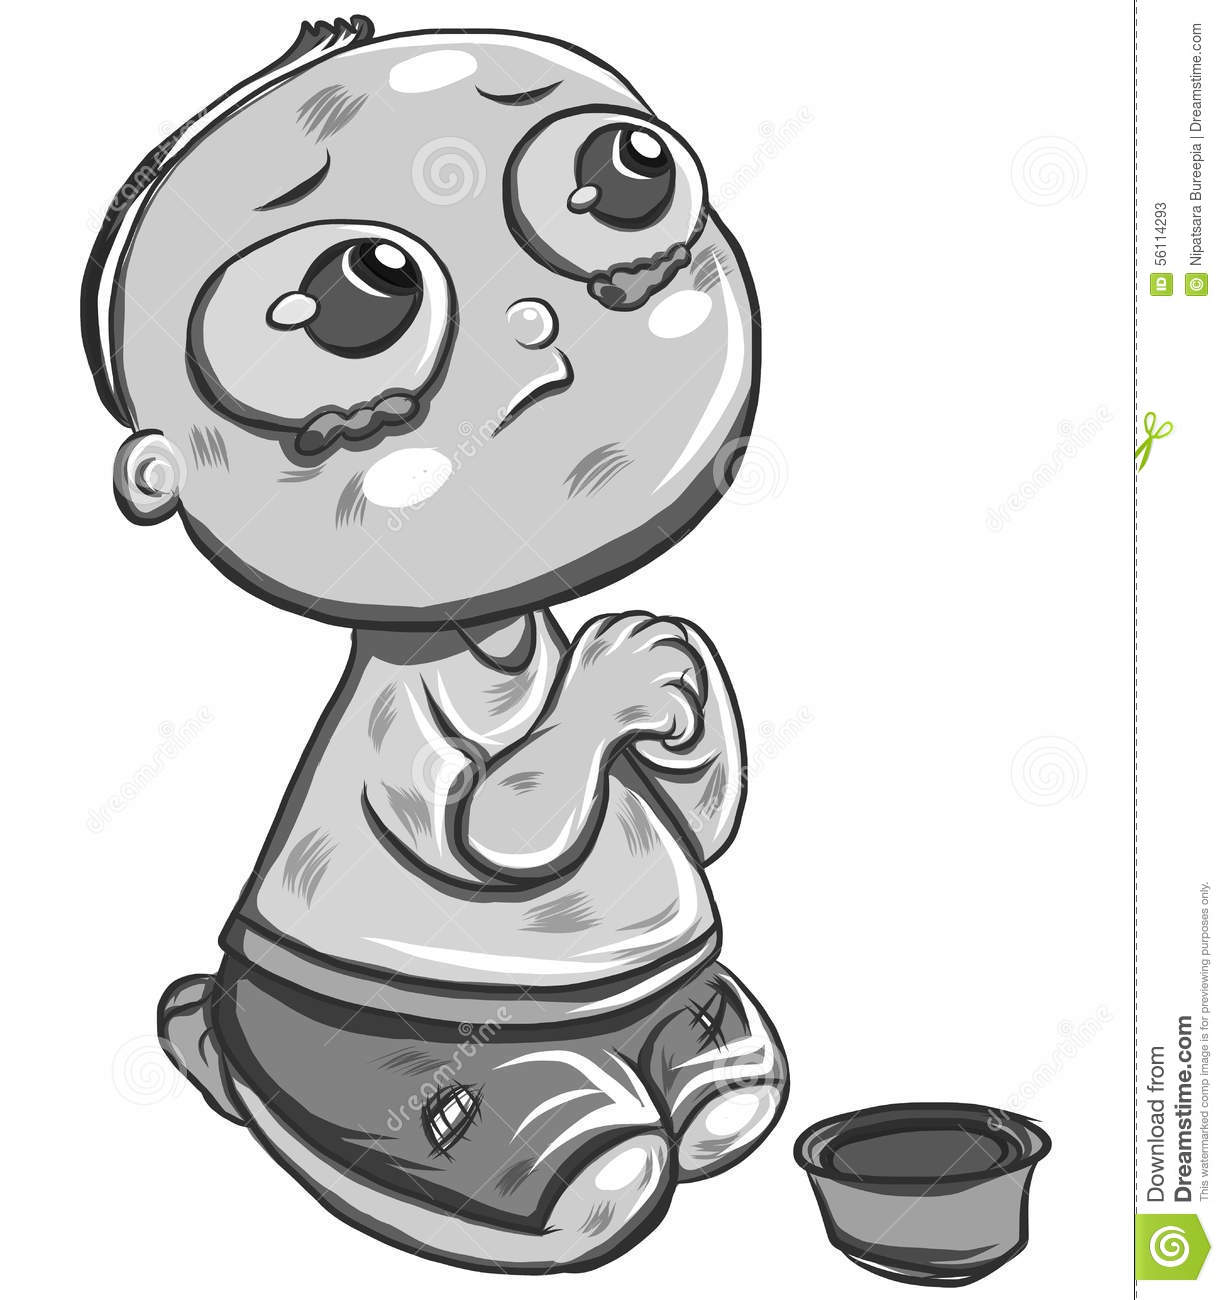 Dreaming Of A Gym For Geeks moreover Stock Illustration Hand Drawn Child Beggar Vector Sad Child Beggar Stop Child Labour Image56114293 furthermore  on old man skinny cartoon